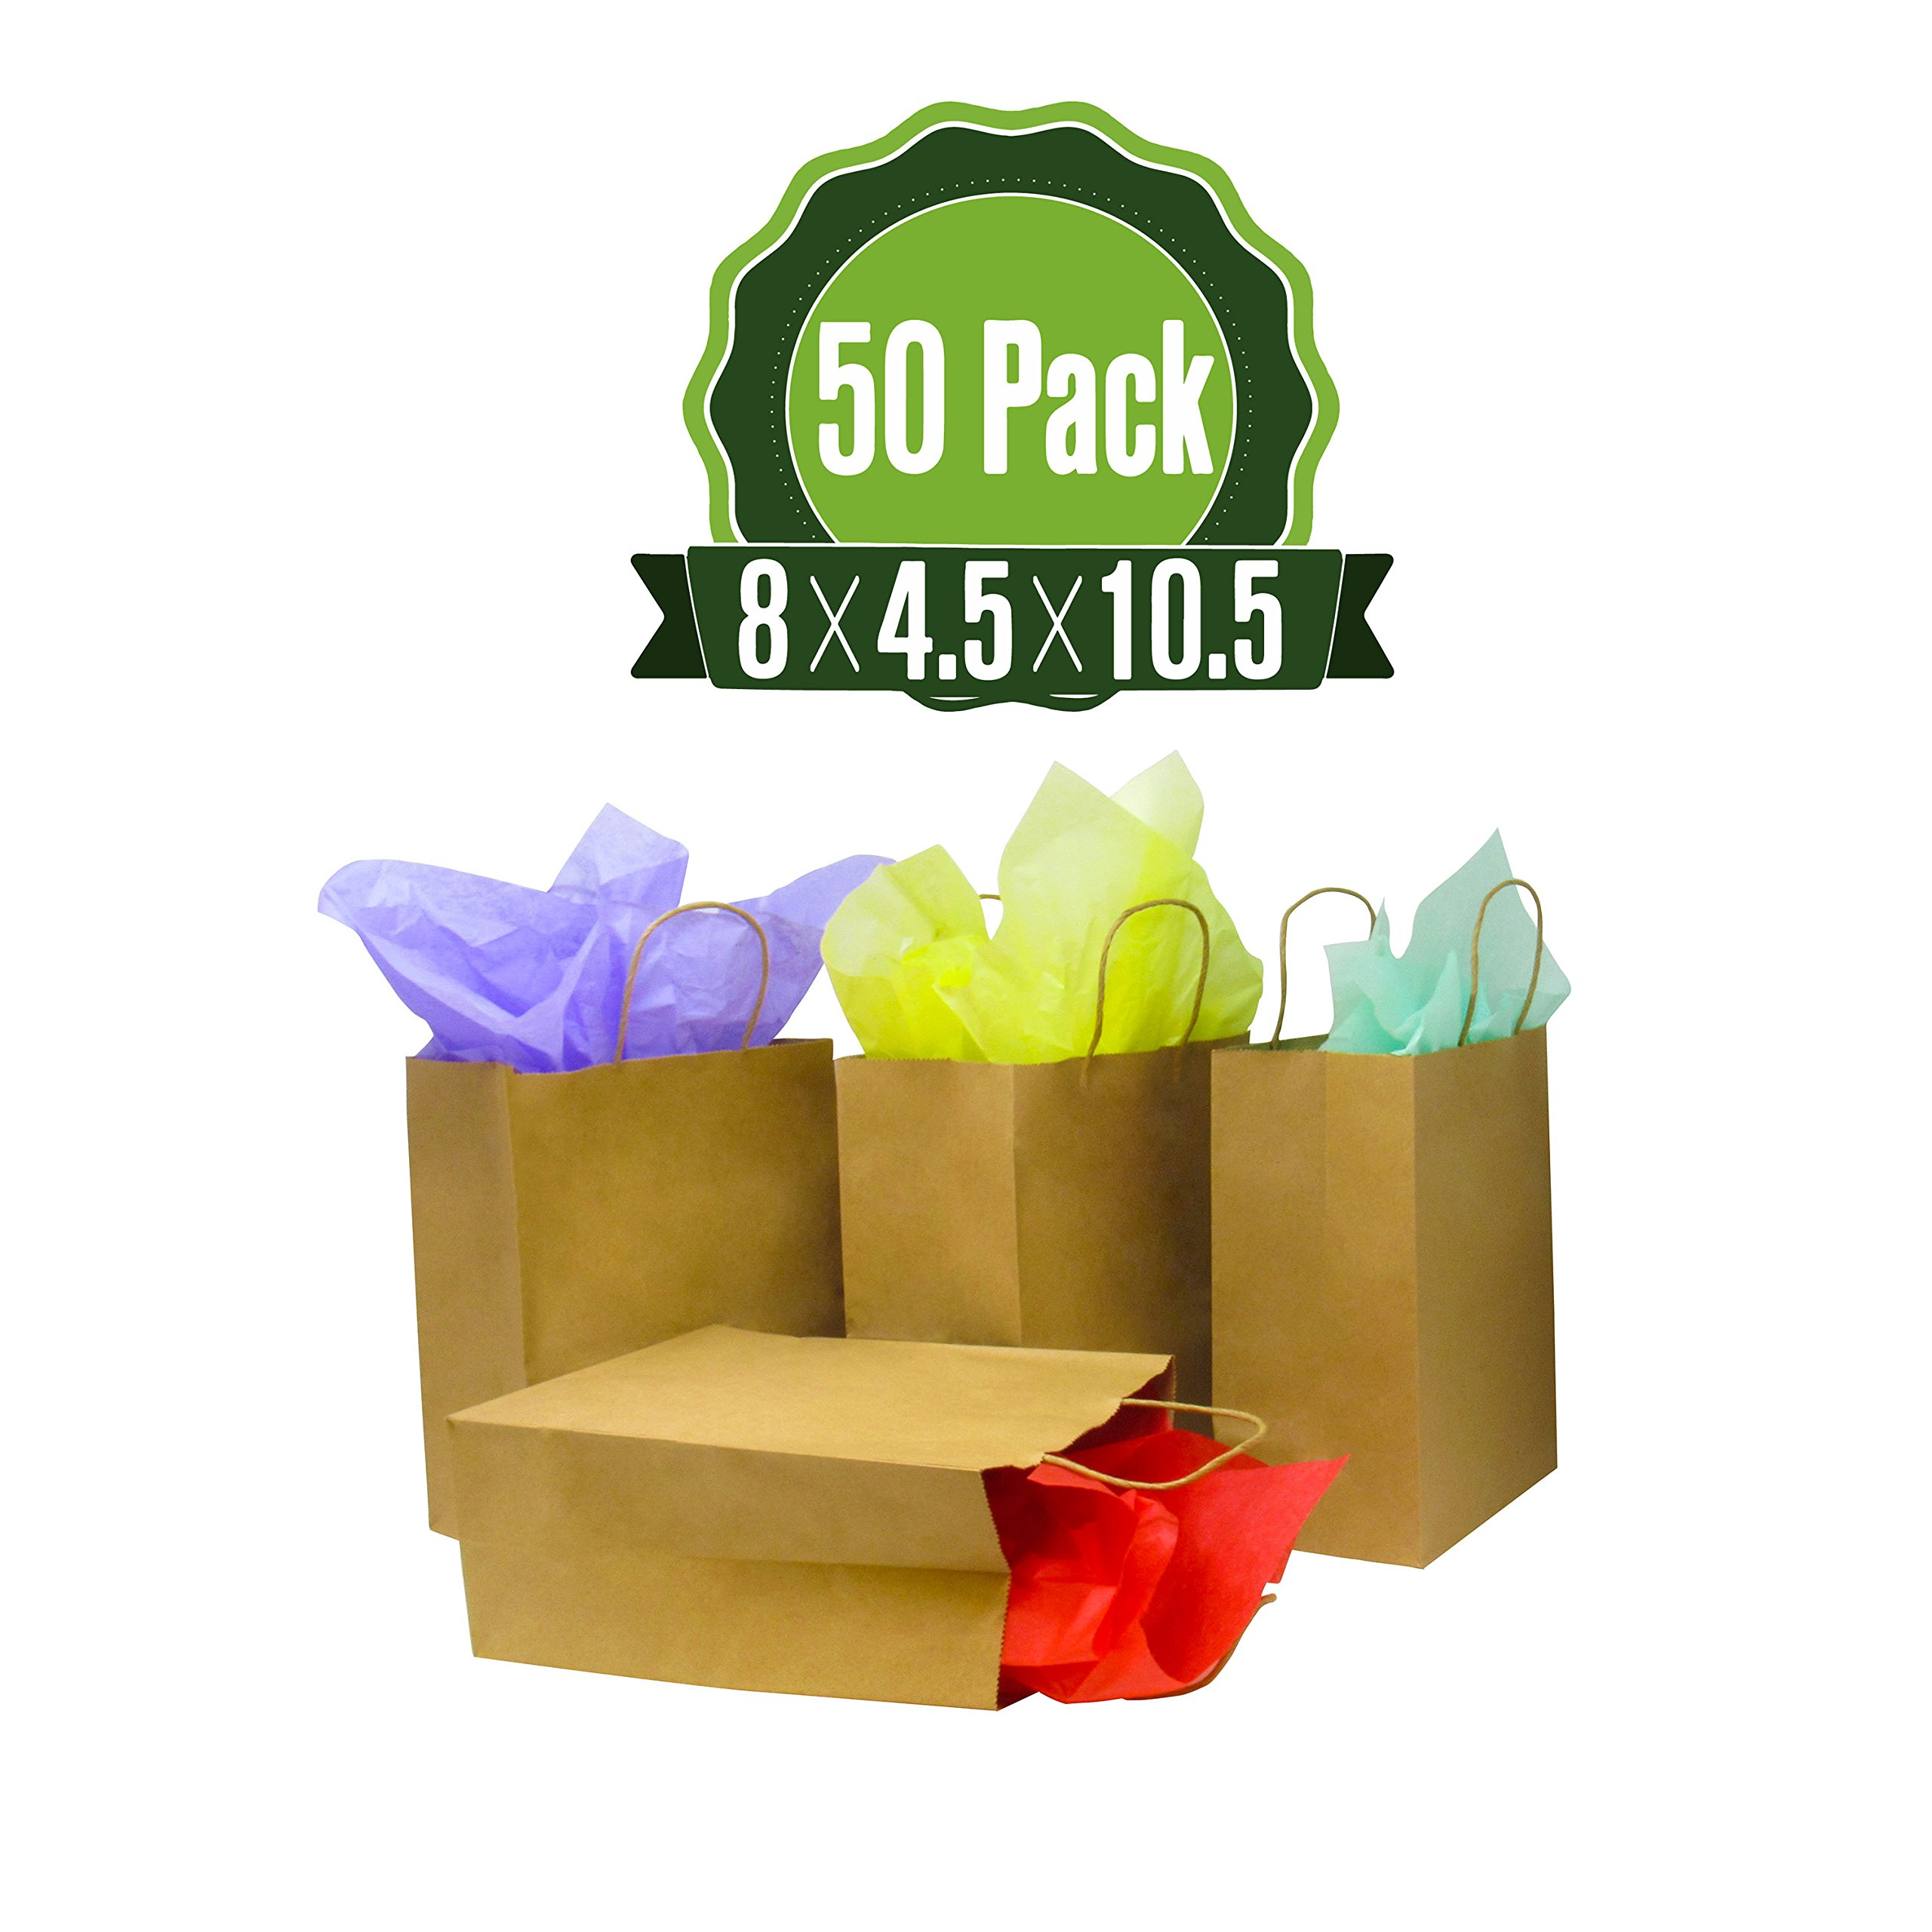 Brown Kraft Paper Gift Bags with Handles, 50 Pcs 8x4.75x10.5 Shopping, Packaging, Retail, Party, Craft, Gifts, Wedding, Recycled Merchandise Bag